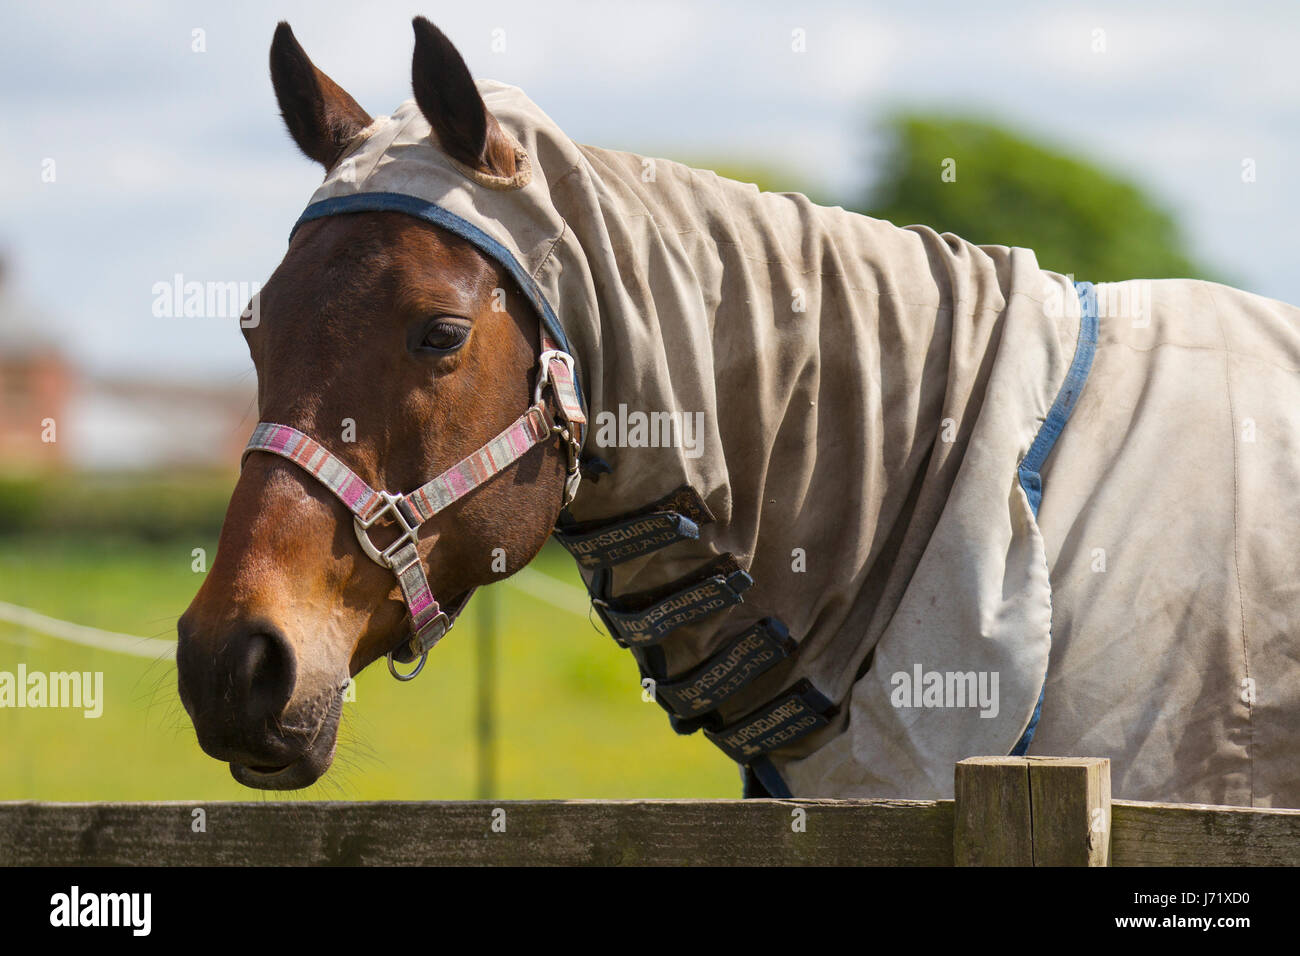 Southport, Merseyside, UK.   UK Weather. 23/05/2017.  Hot weather for horses which need to keep cool during the - Stock Image